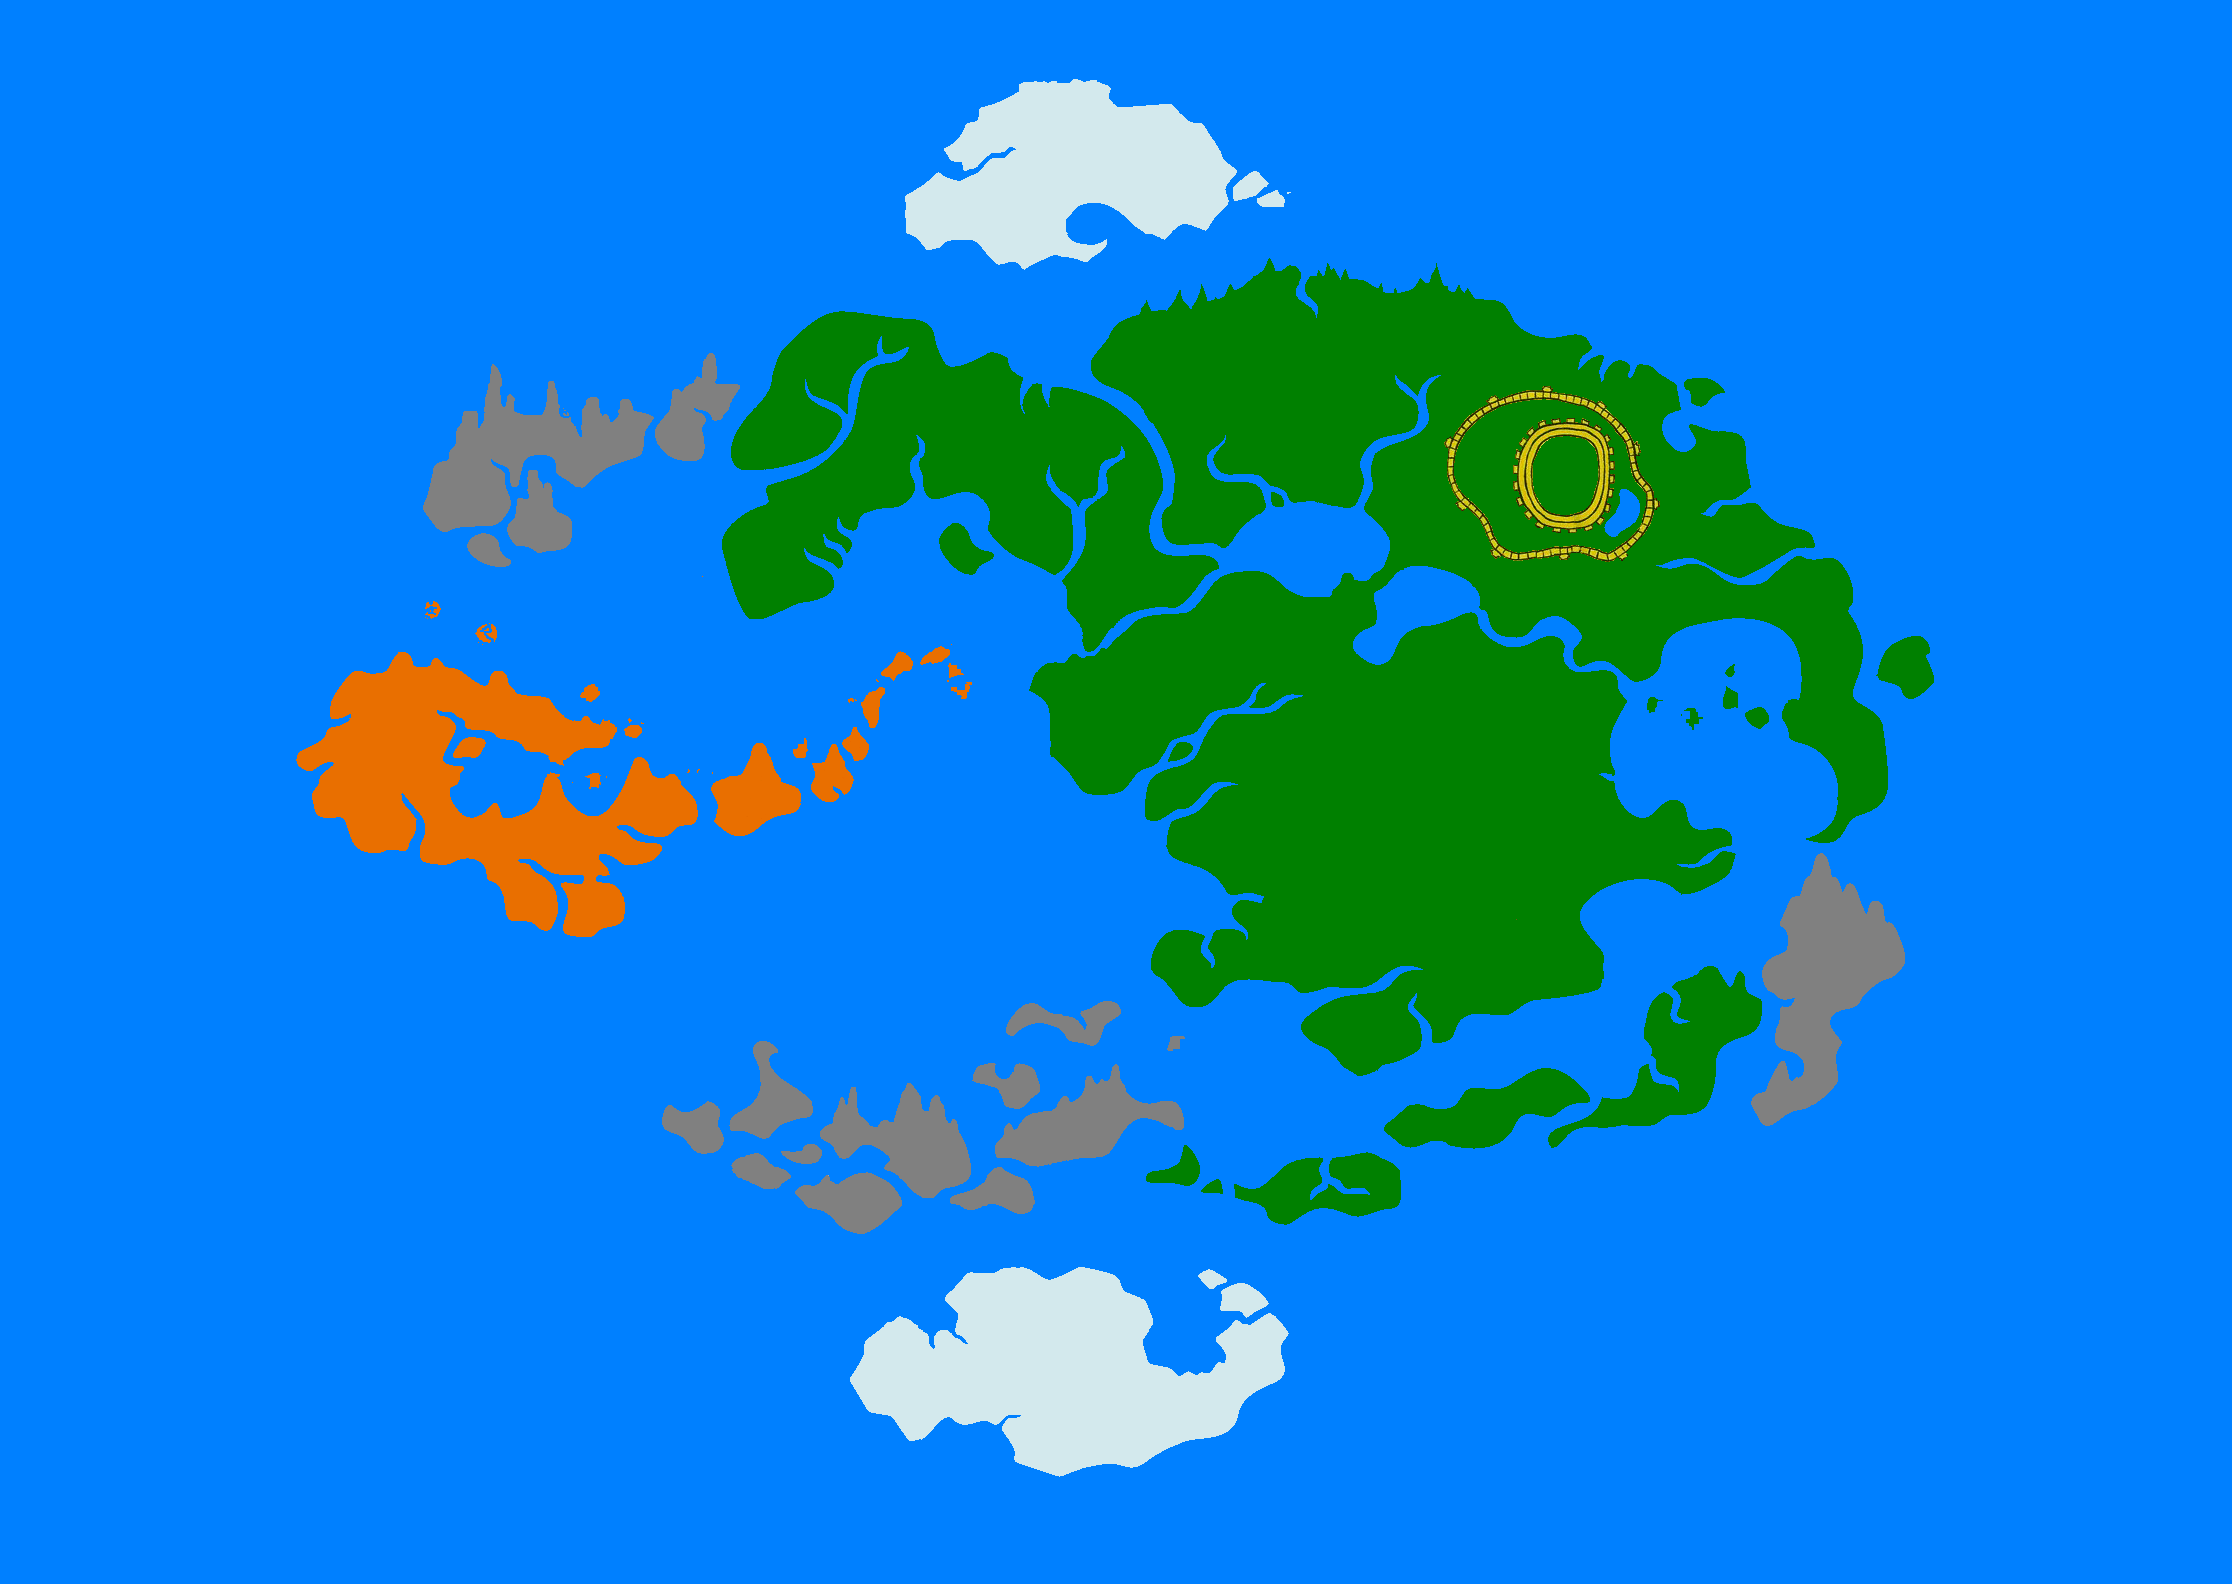 Avatar The Last Airbender Map By K On DeviantArt - Avatar the last airbender us map